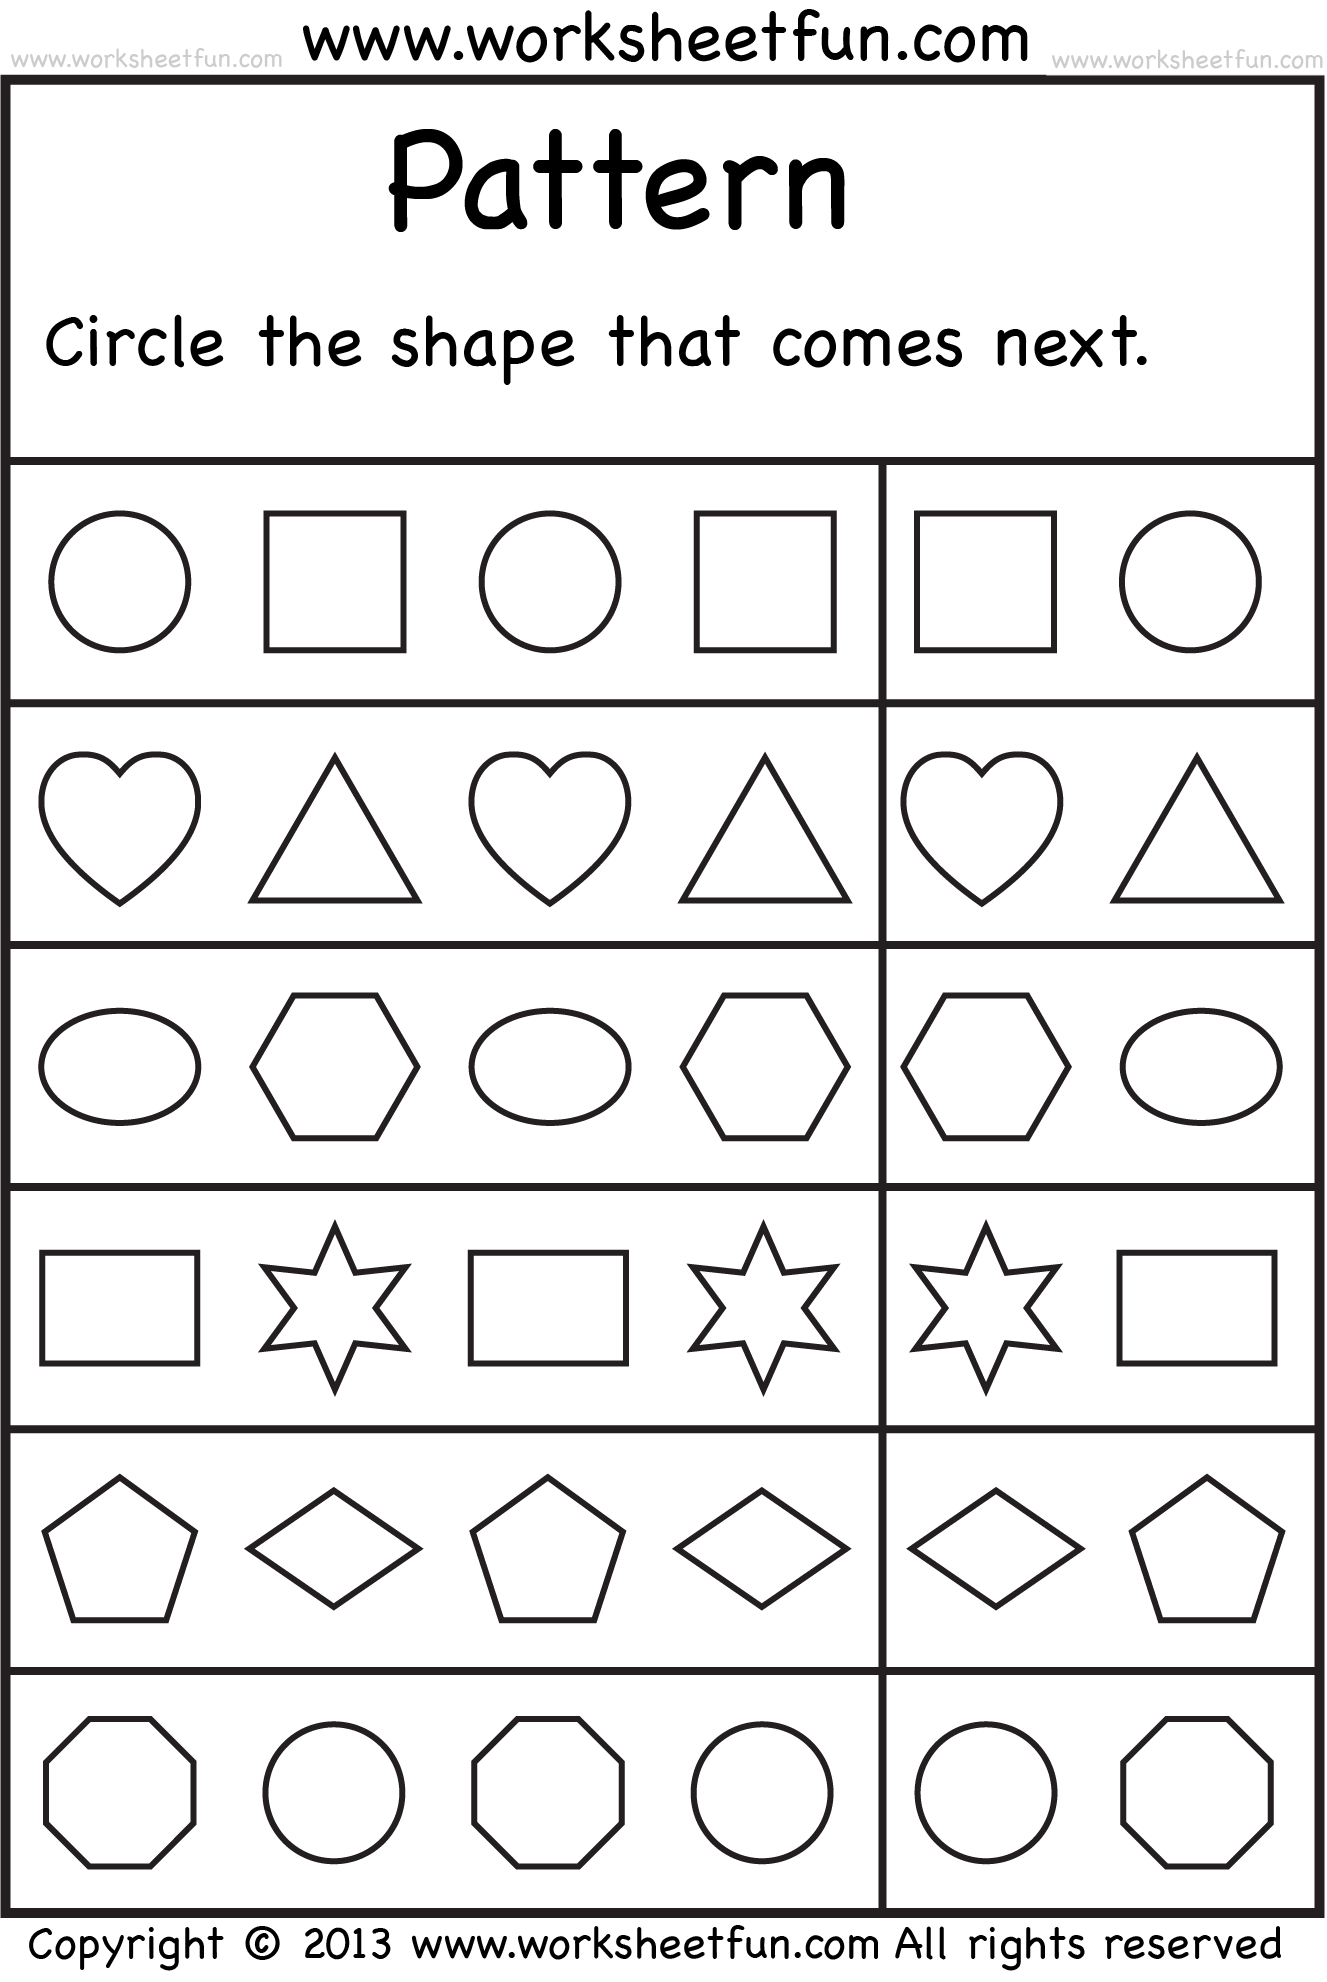 Proatmealus  Outstanding  Images About School Worksheets On Pinterest  Number Words  With Hot  Images About School Worksheets On Pinterest  Number Words Alphabet Worksheets And Free Printable Kindergarten Worksheets With Appealing High School Math Word Problems Worksheets Also Free Reading Comprehension Worksheet In Addition First Grade Comprehension Worksheets Free And Dynamically Created Math Worksheets As Well As Cause And Effect Signal Words Worksheet Additionally Nd Amendment Worksheet From Pinterestcom With Proatmealus  Hot  Images About School Worksheets On Pinterest  Number Words  With Appealing  Images About School Worksheets On Pinterest  Number Words Alphabet Worksheets And Free Printable Kindergarten Worksheets And Outstanding High School Math Word Problems Worksheets Also Free Reading Comprehension Worksheet In Addition First Grade Comprehension Worksheets Free From Pinterestcom